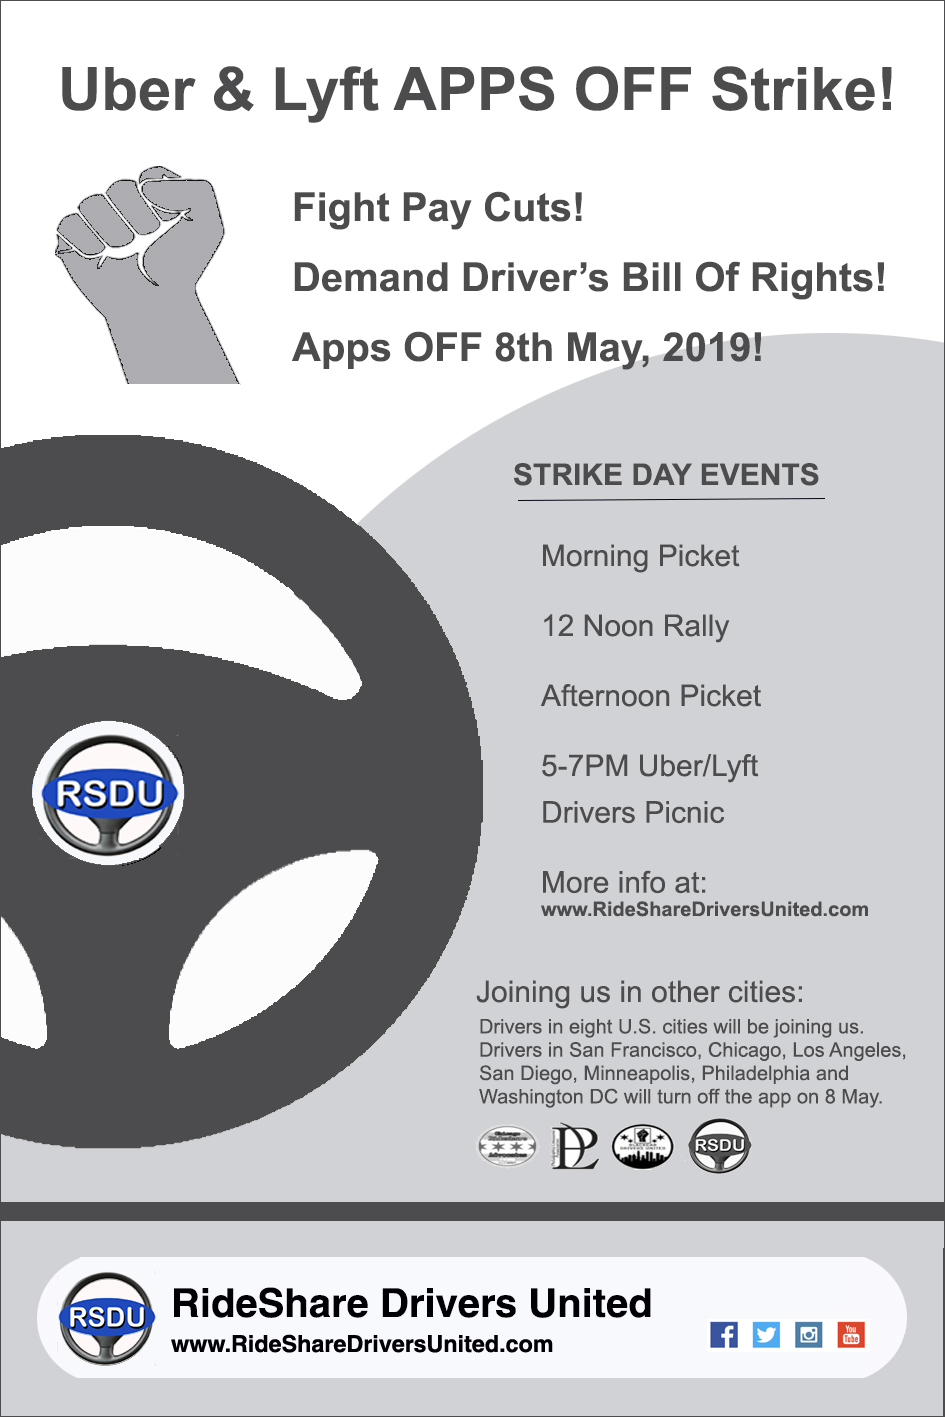 RideShare Drivers United are calling for a 24hrs strike 8 May 2019